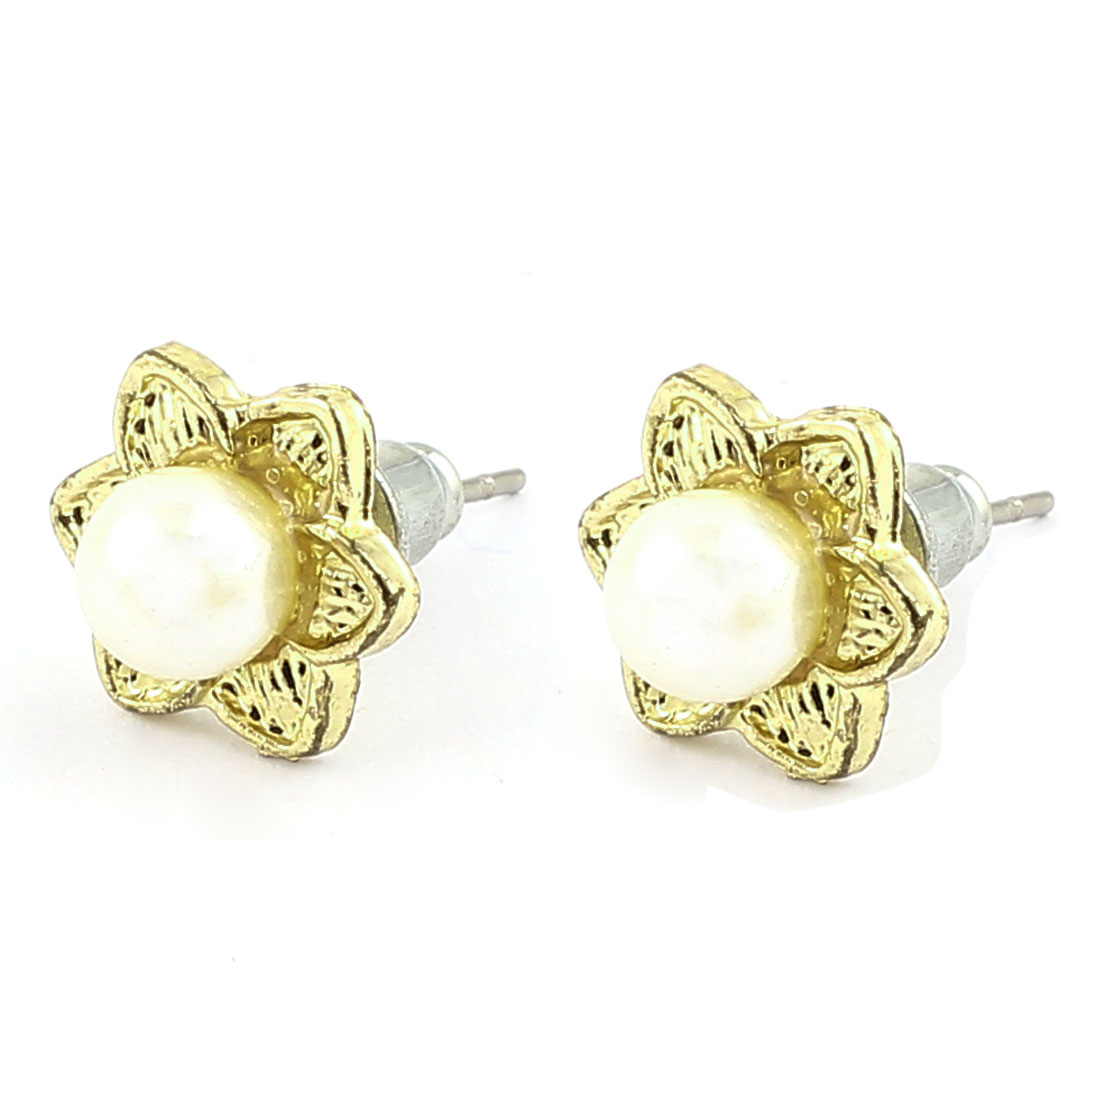 Pair Women Metal Plastic Artificial Plastic White Imitation Pearl Inlaid Flower Shape Pierced Stud Pin Ear Nail Earrings Earbobs Gold Tone 2cm Length